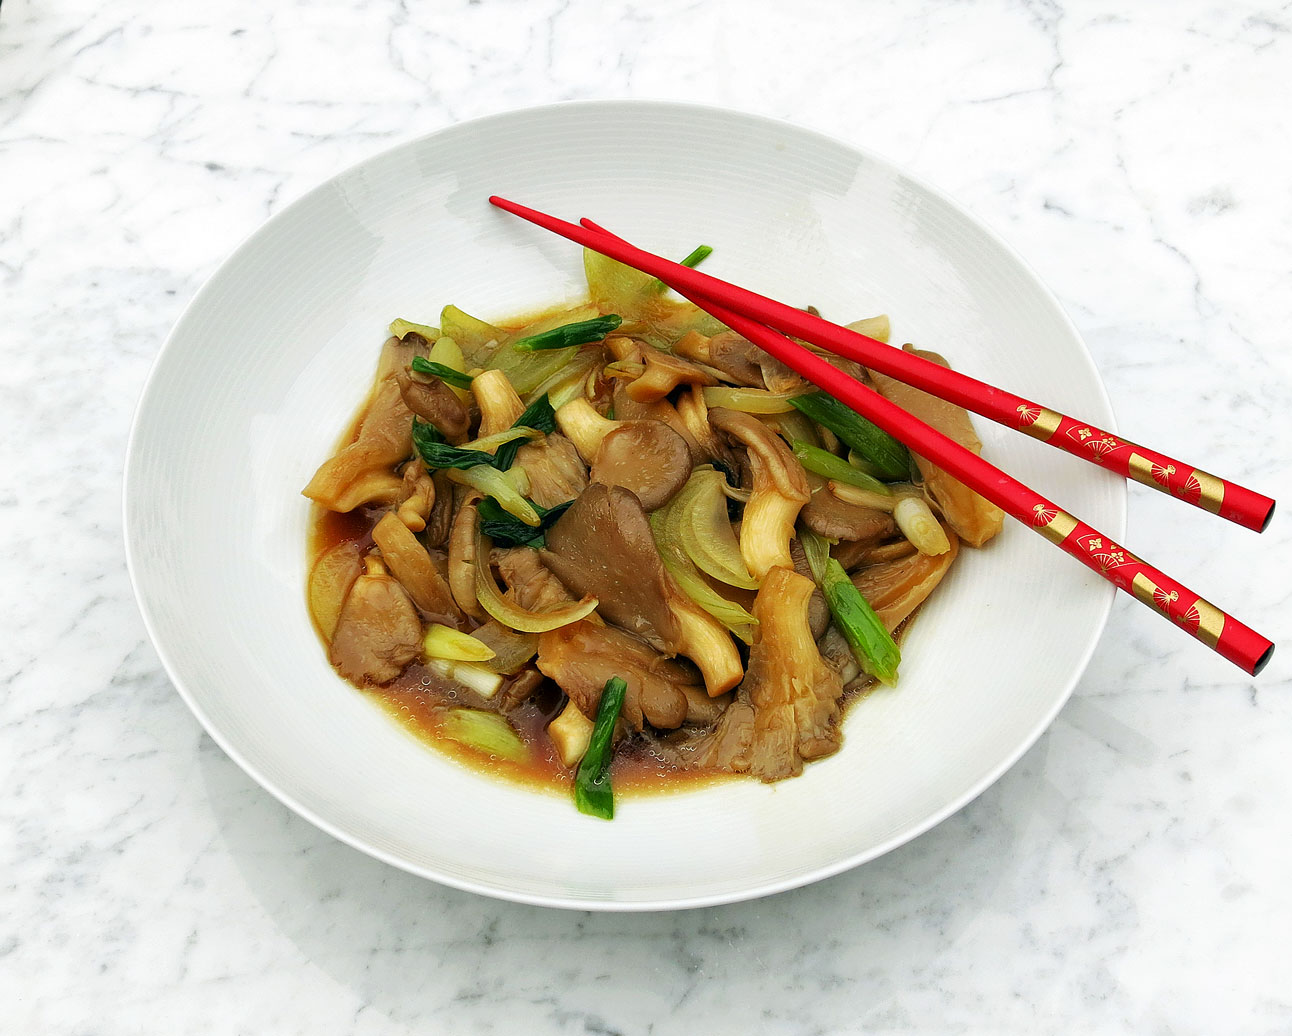 Stir fry Chinese oyster mushrooms and spring onions